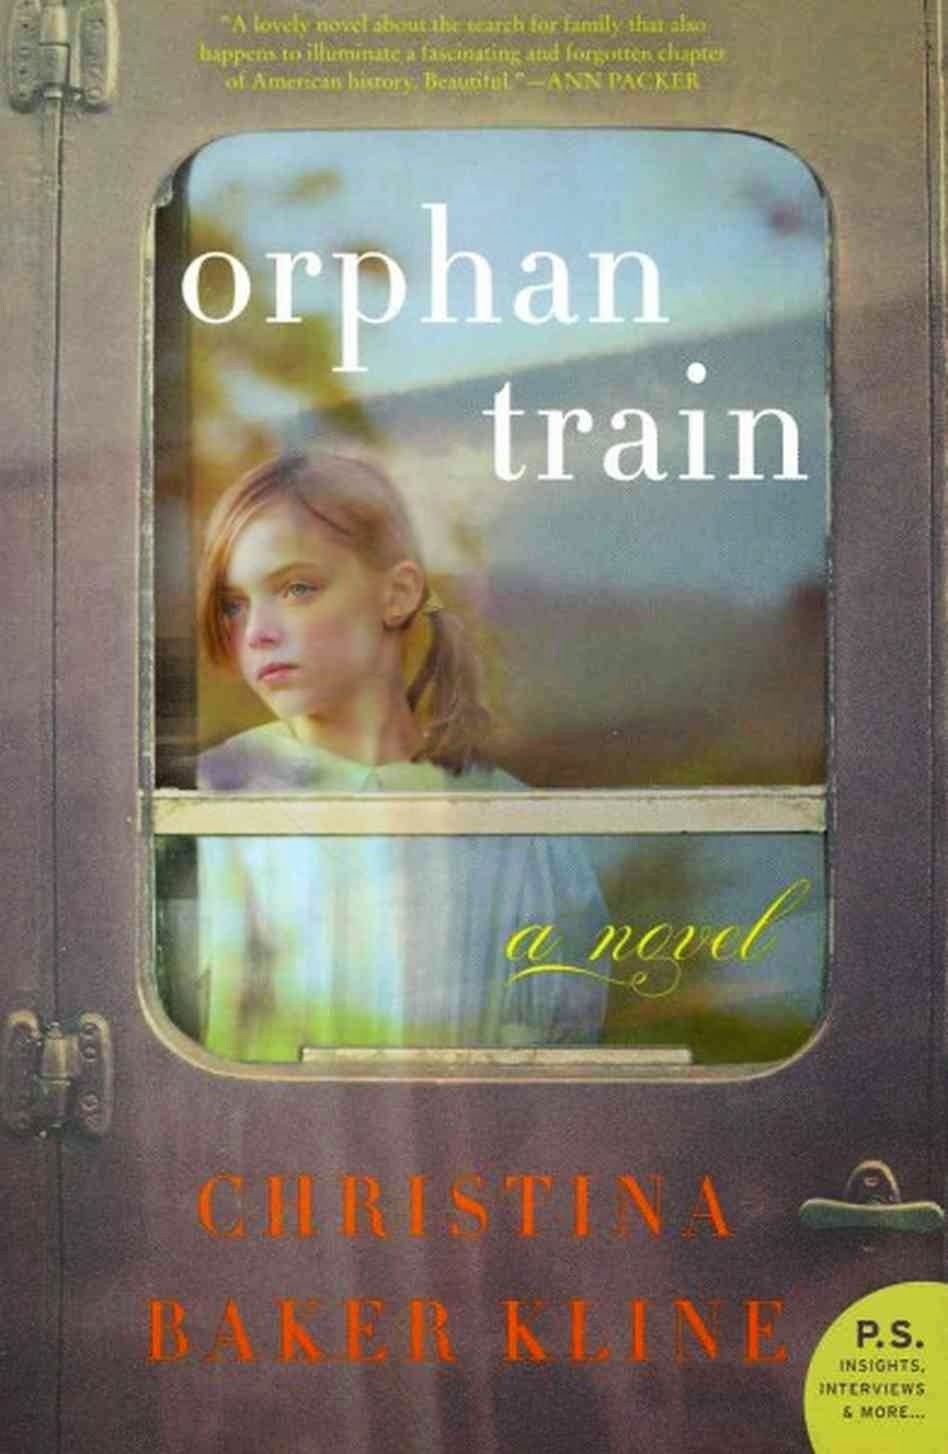 http://www.amazon.com/Orphan-Train-Christina-Baker-Kline/dp/0061950726